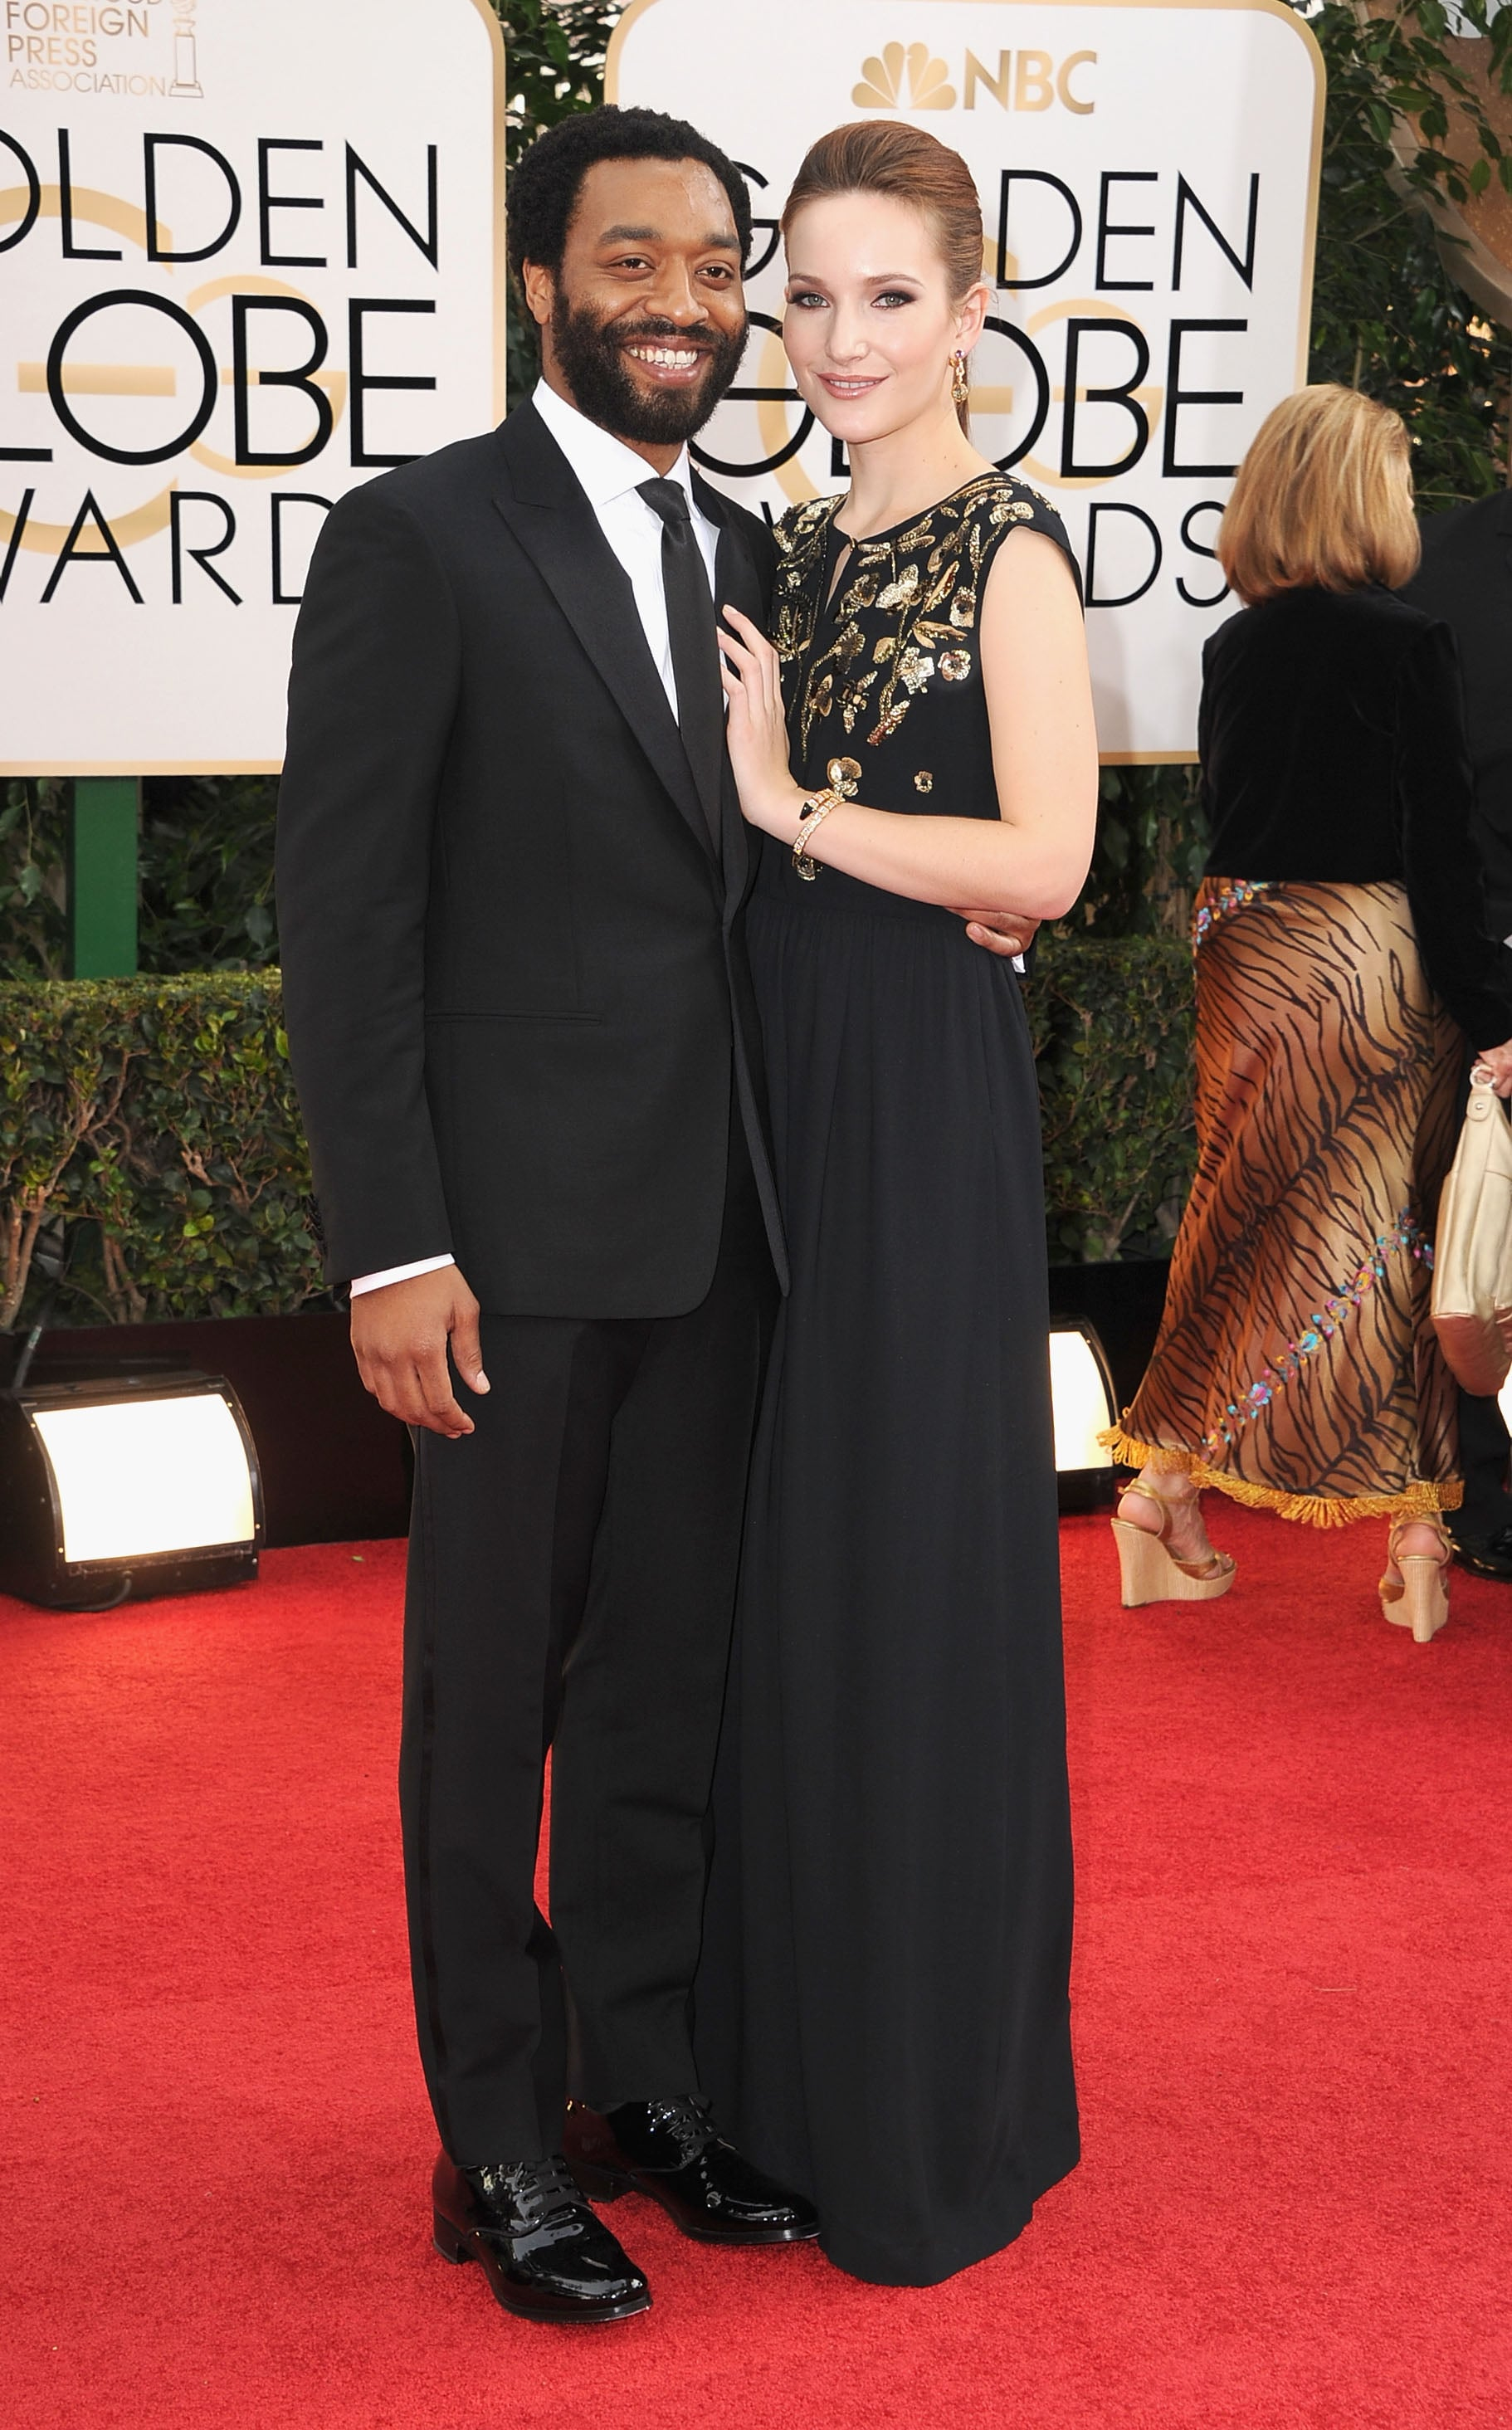 Chiwetel Ejiofor and his girlfriend, Sari Mercer, walked the red carpet together.